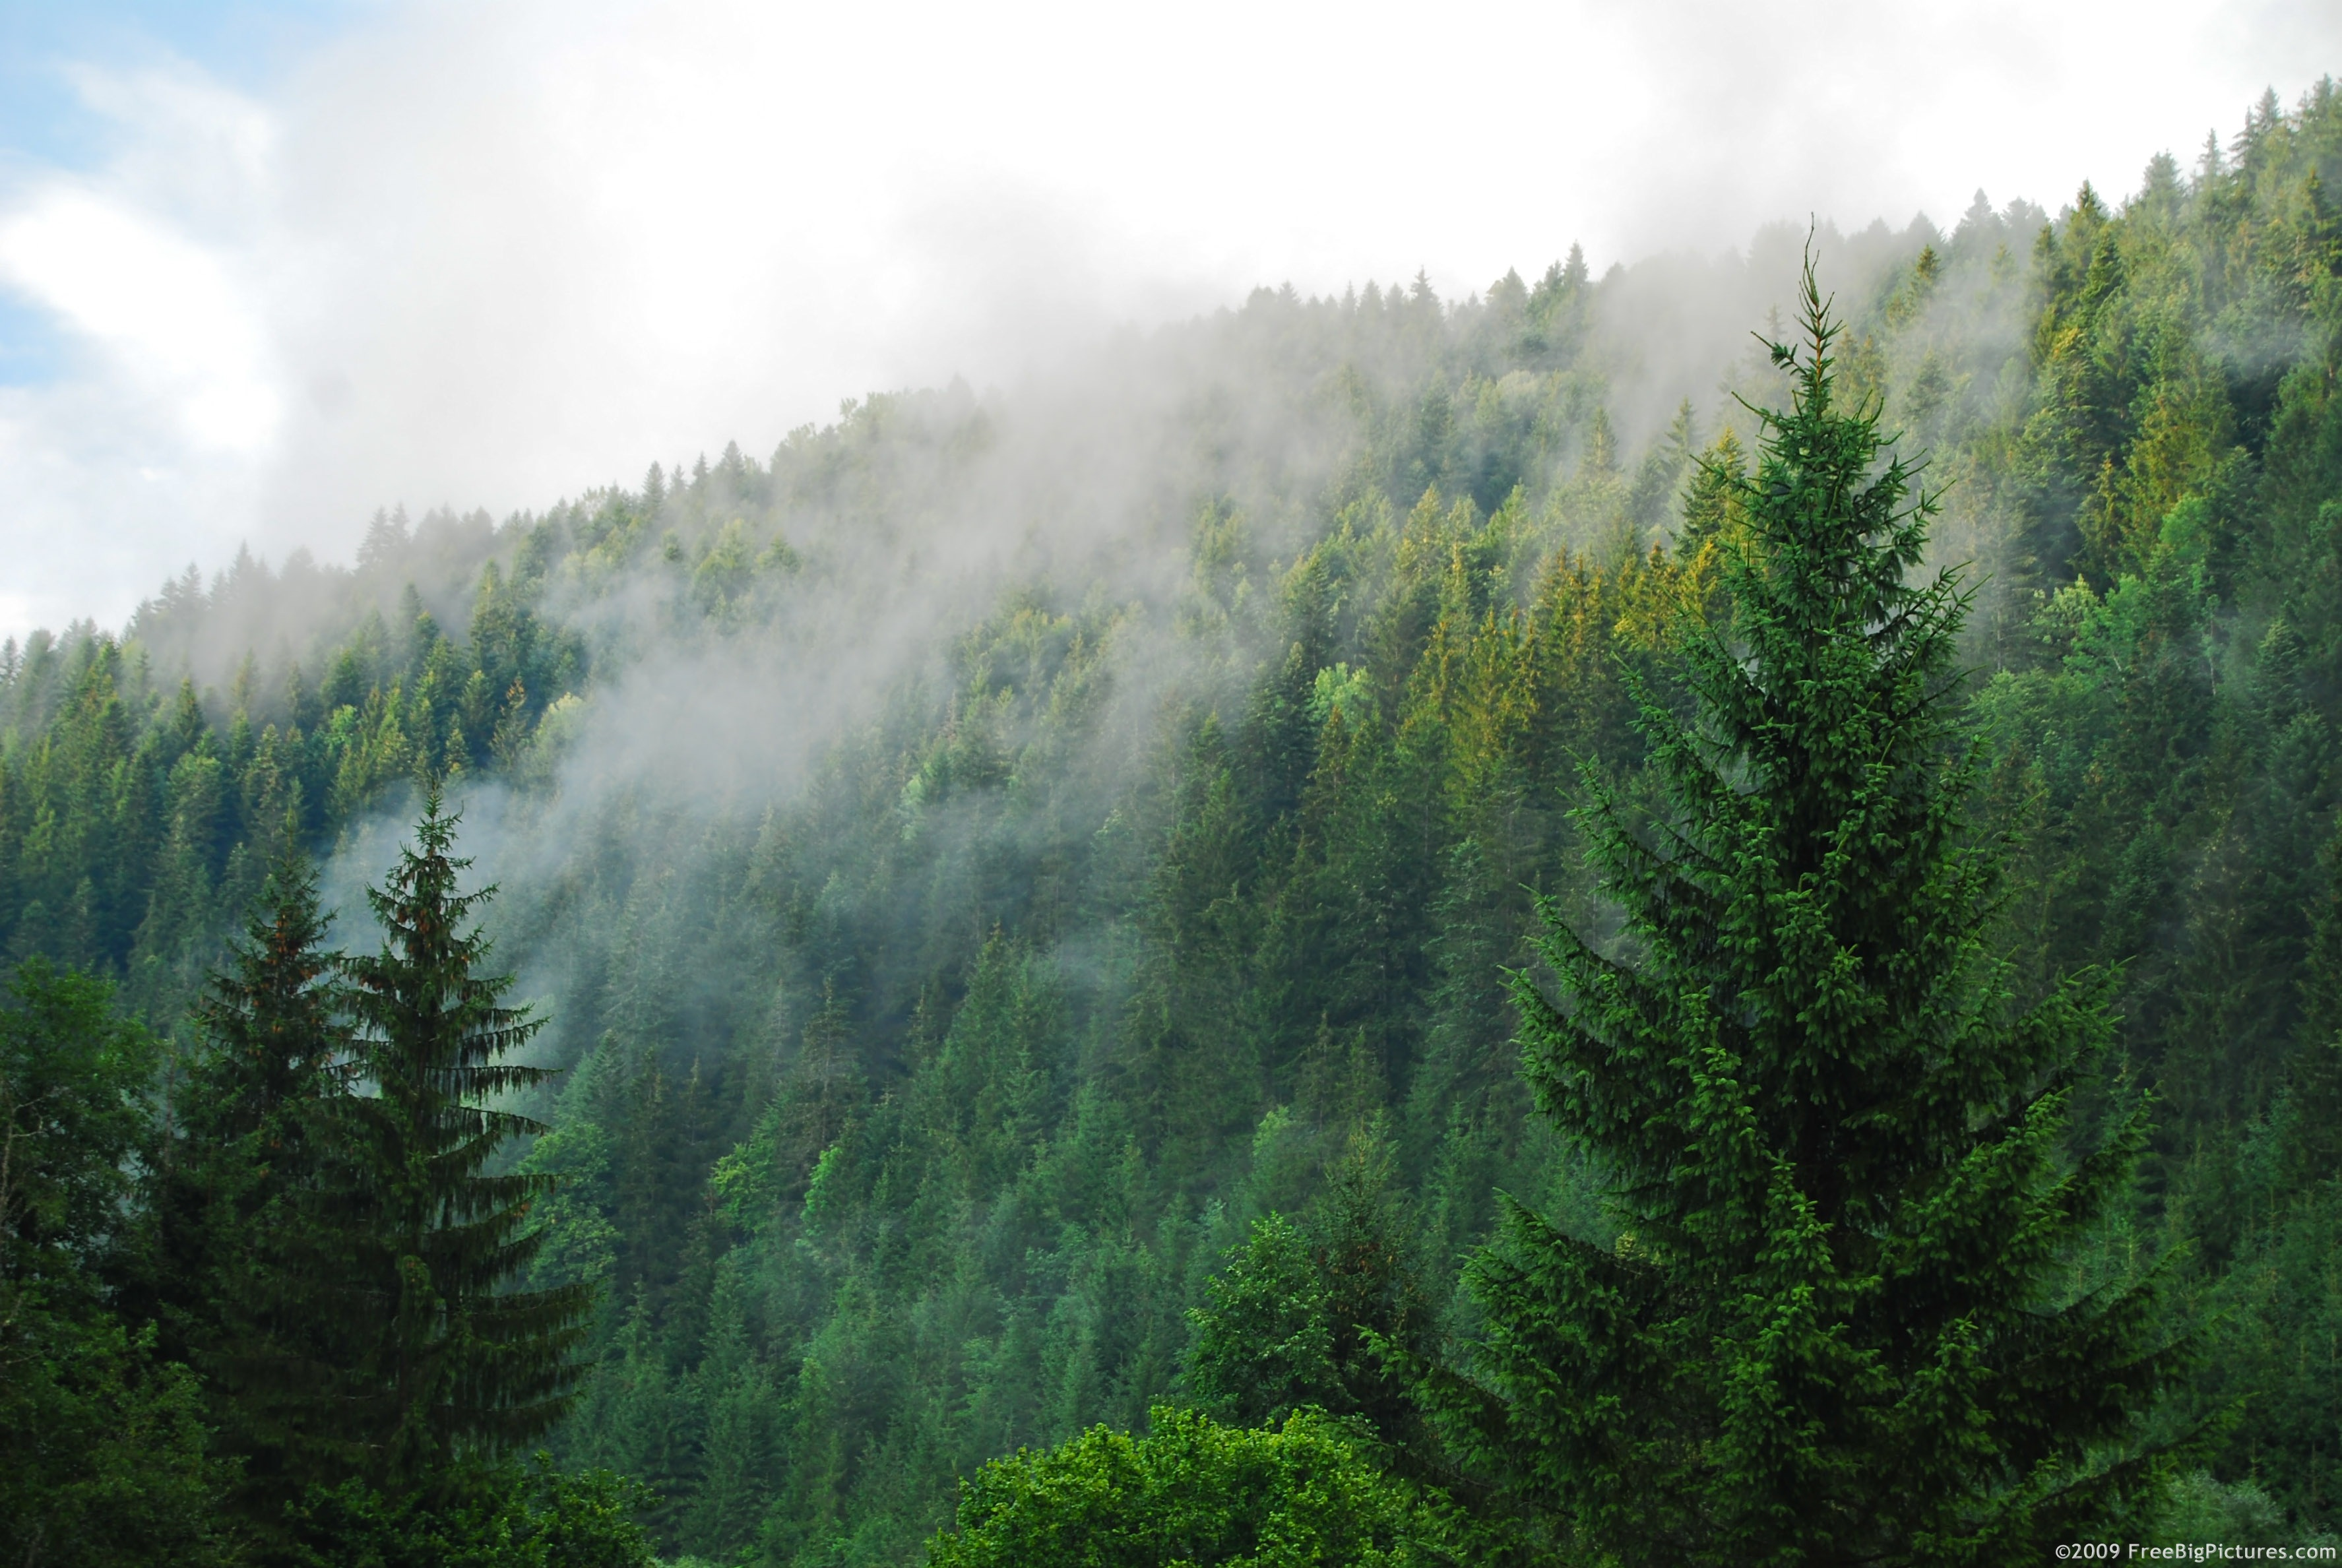 coniferous forest images photos picture wallpaper download